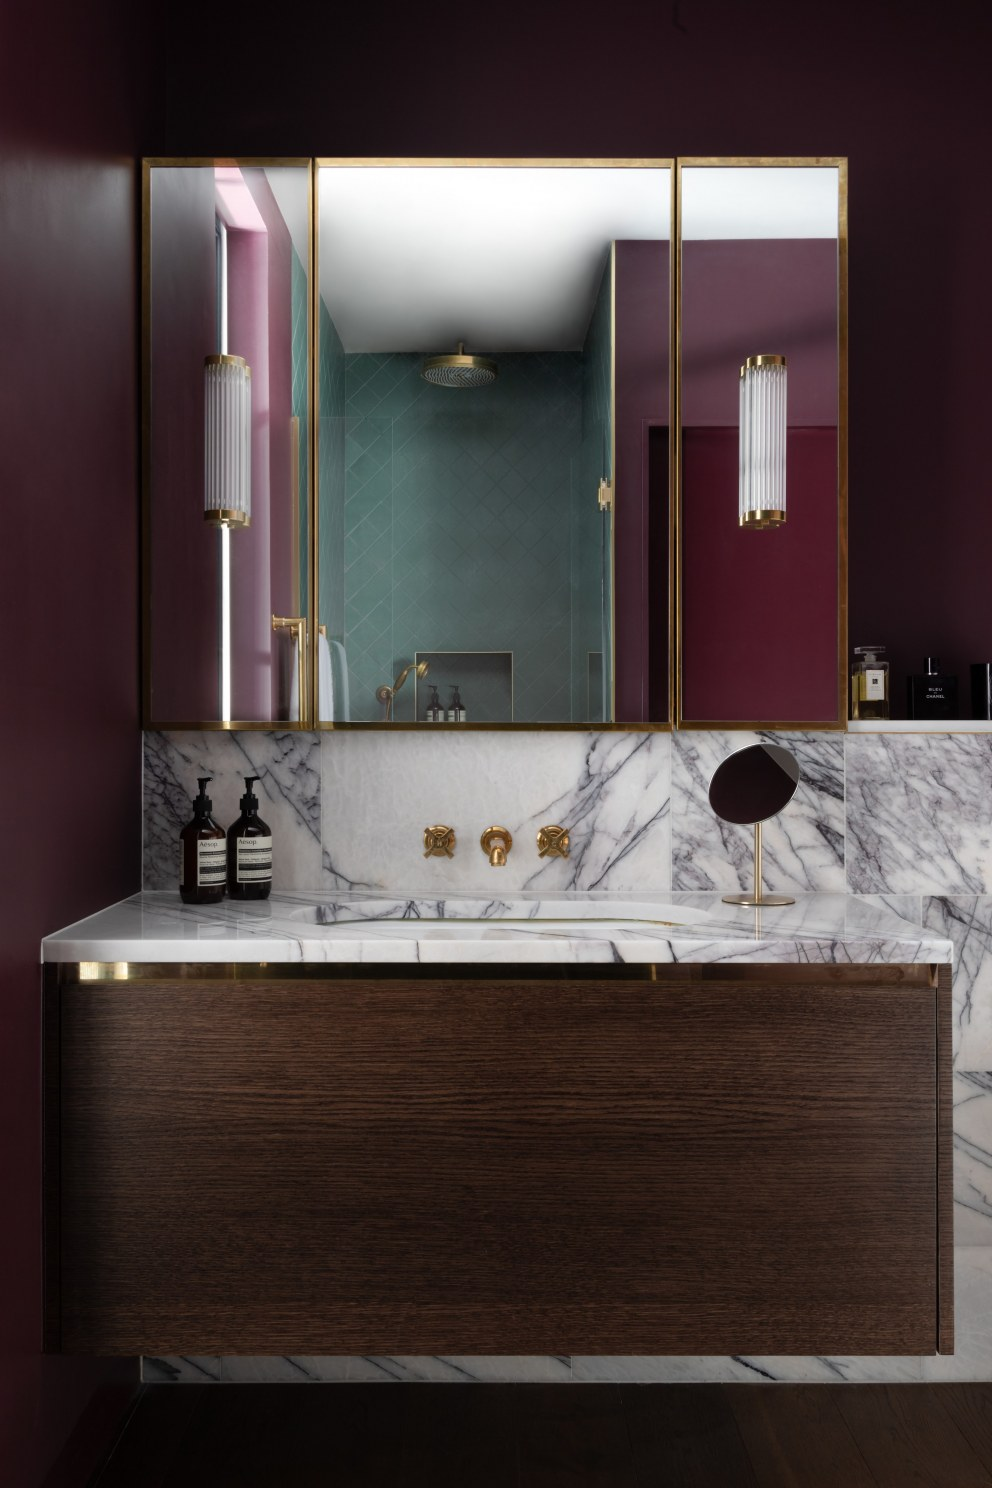 Kensington | Downstairs loo | Interior Designers